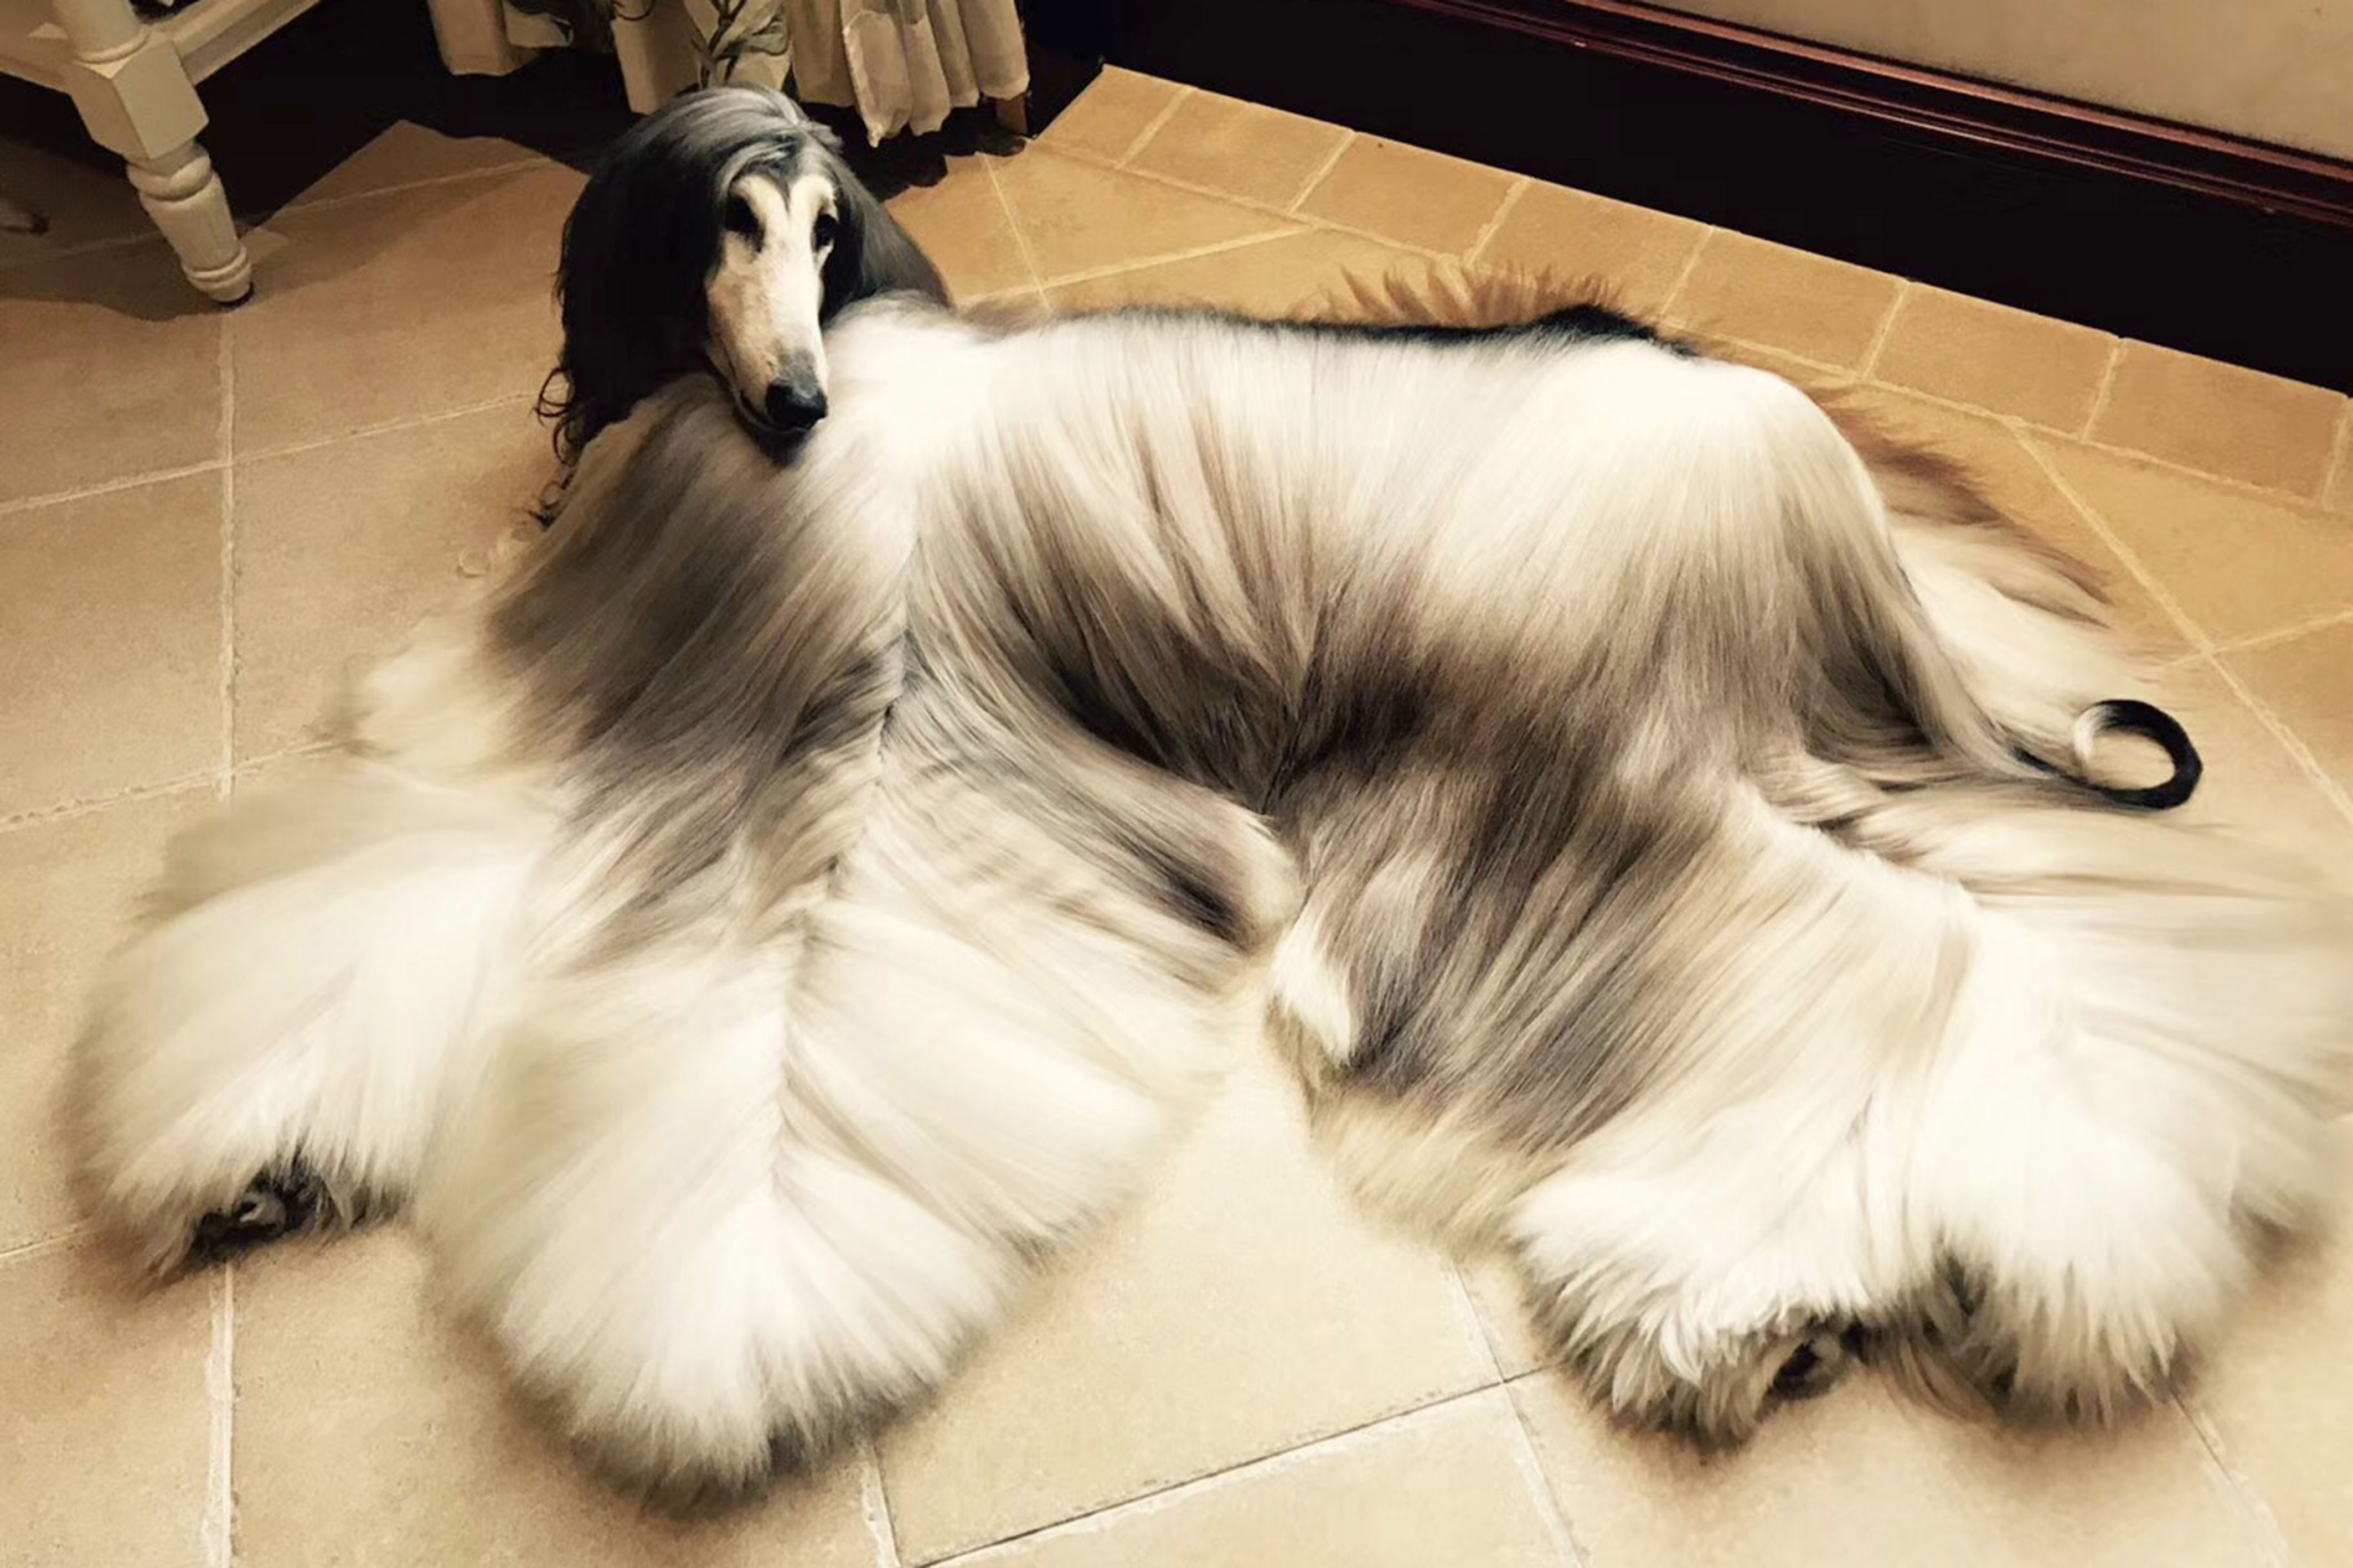 A Glam Hound Owner Of World S Most Stylish Dog Has Spent 28 000 On